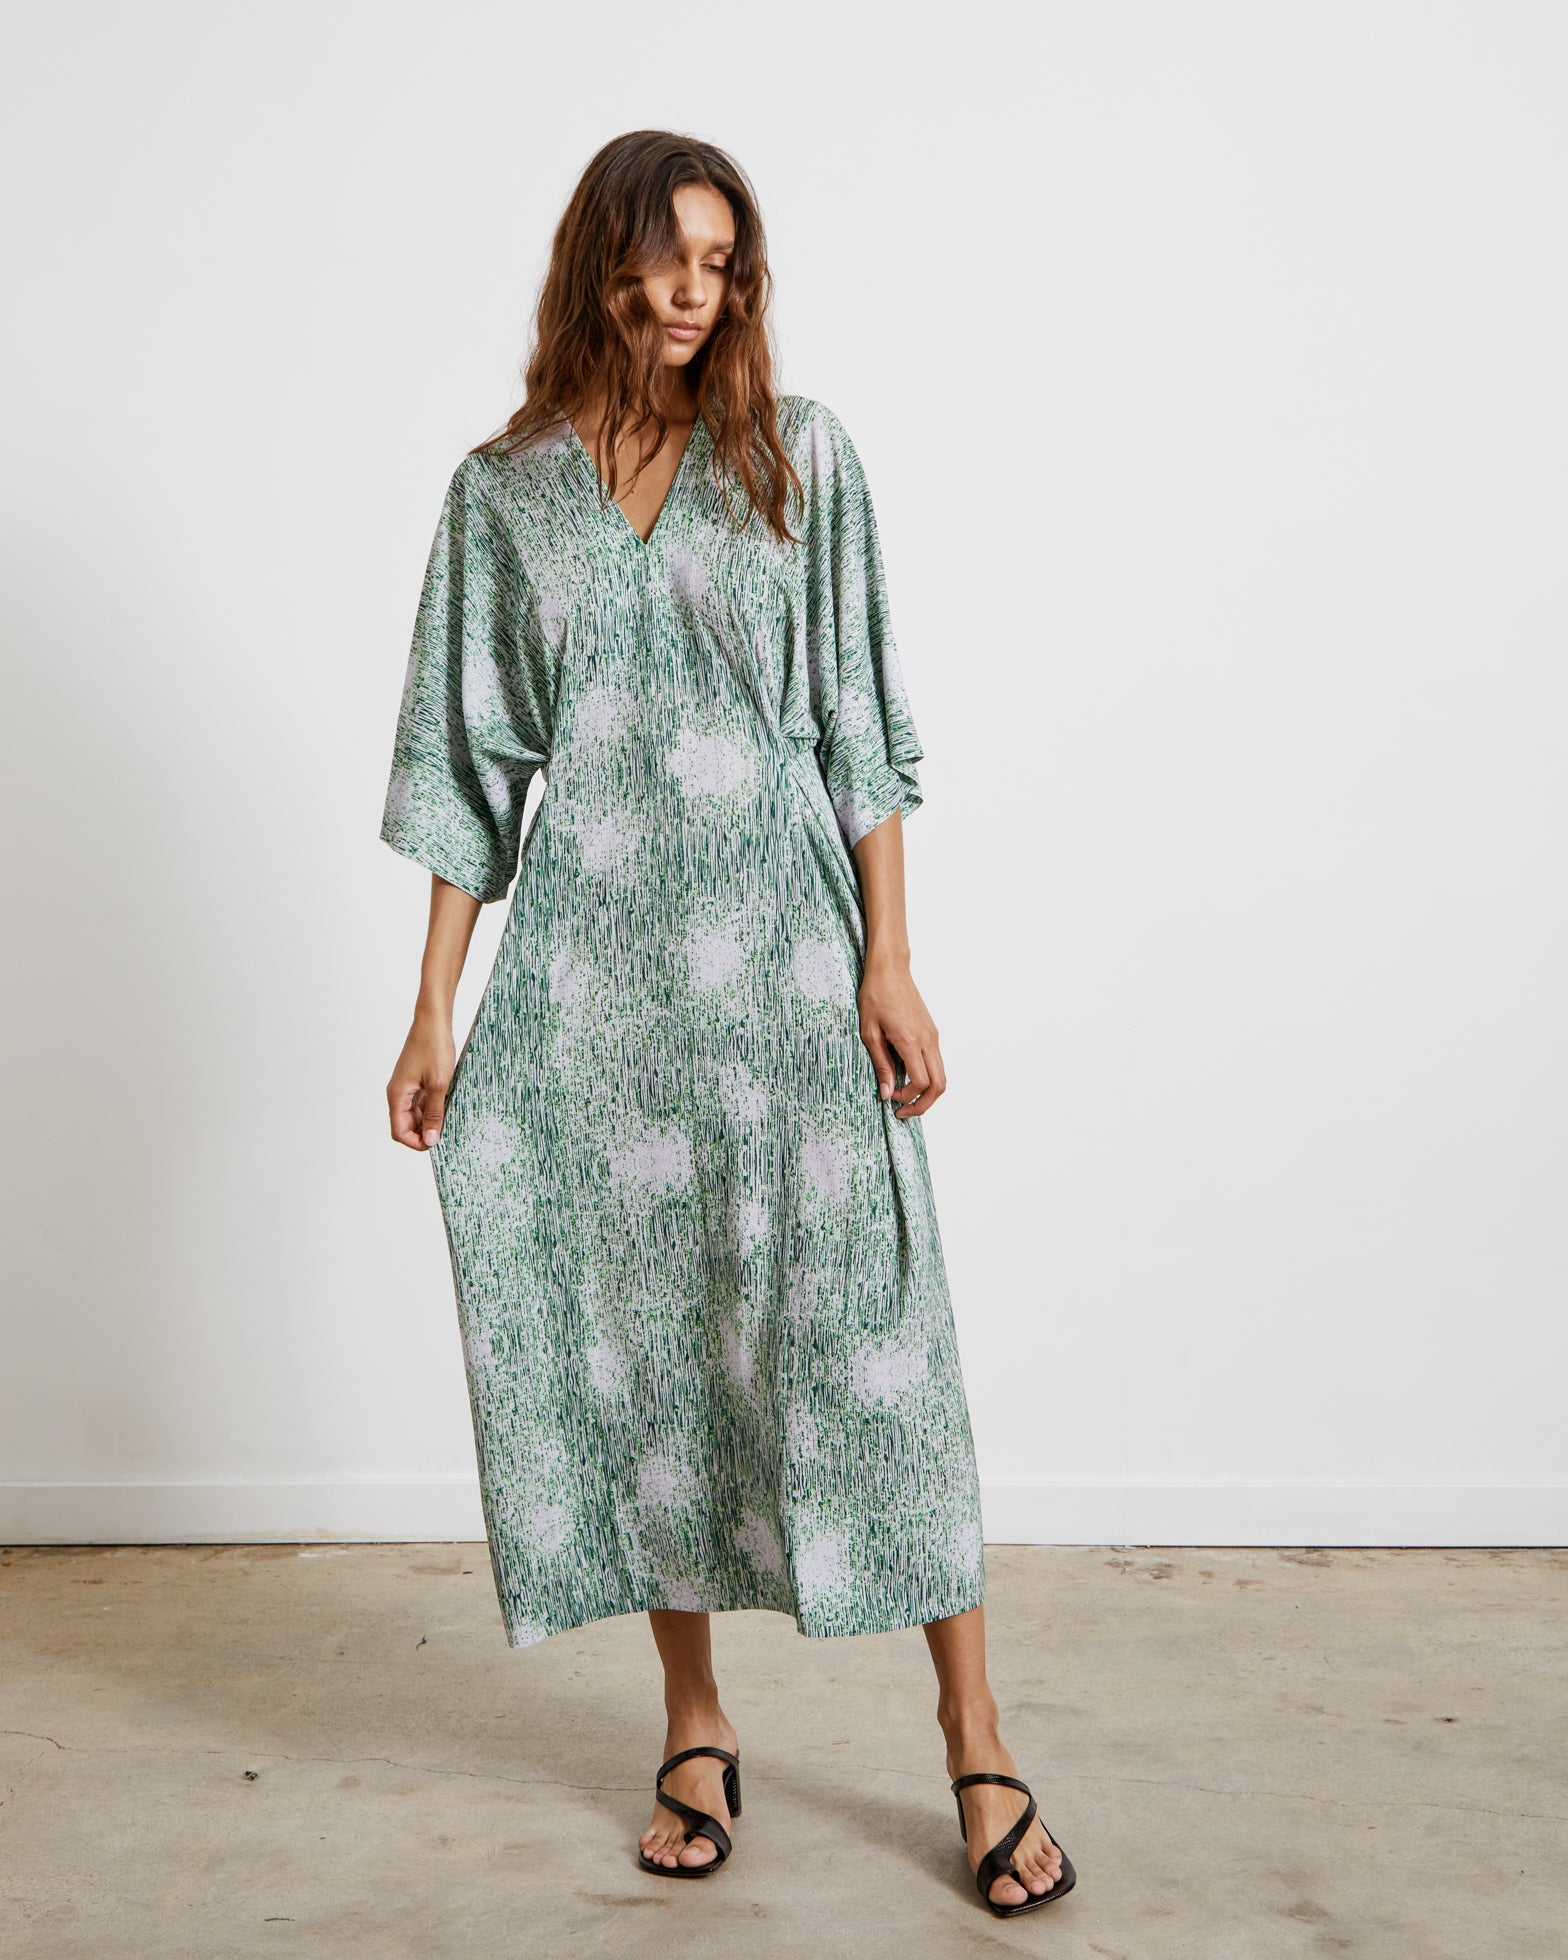 Jelly Dress in Melted Green